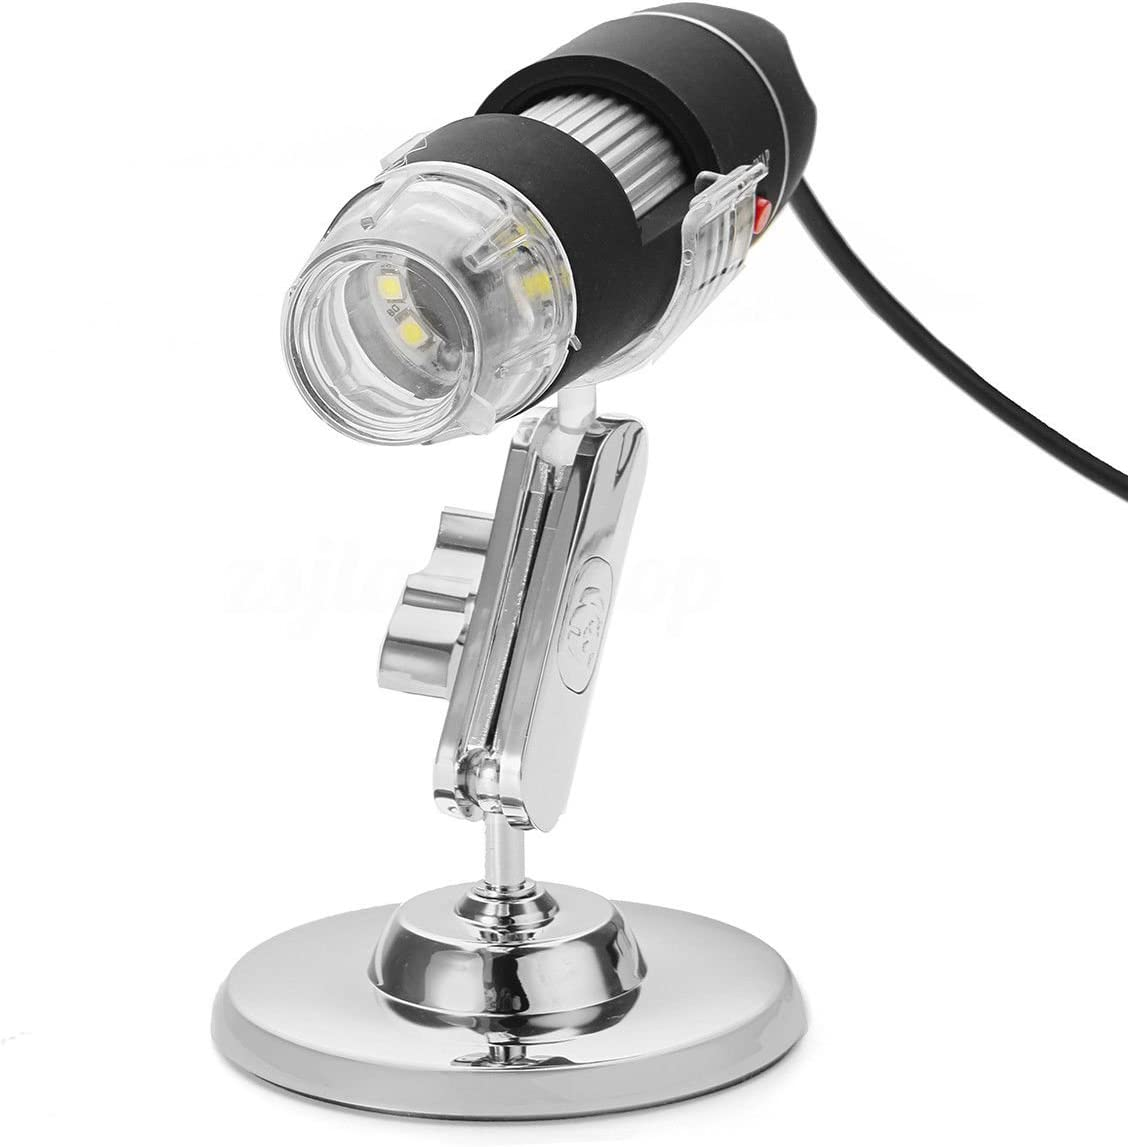 Kqiang USB Digital Microscope 1080P 50 to 1600X Handheld Mini USB Microscope Industrial Grade HD Magnification with 8 LED Lights Support USB2.0 Compatible with Windows Mac Andriod